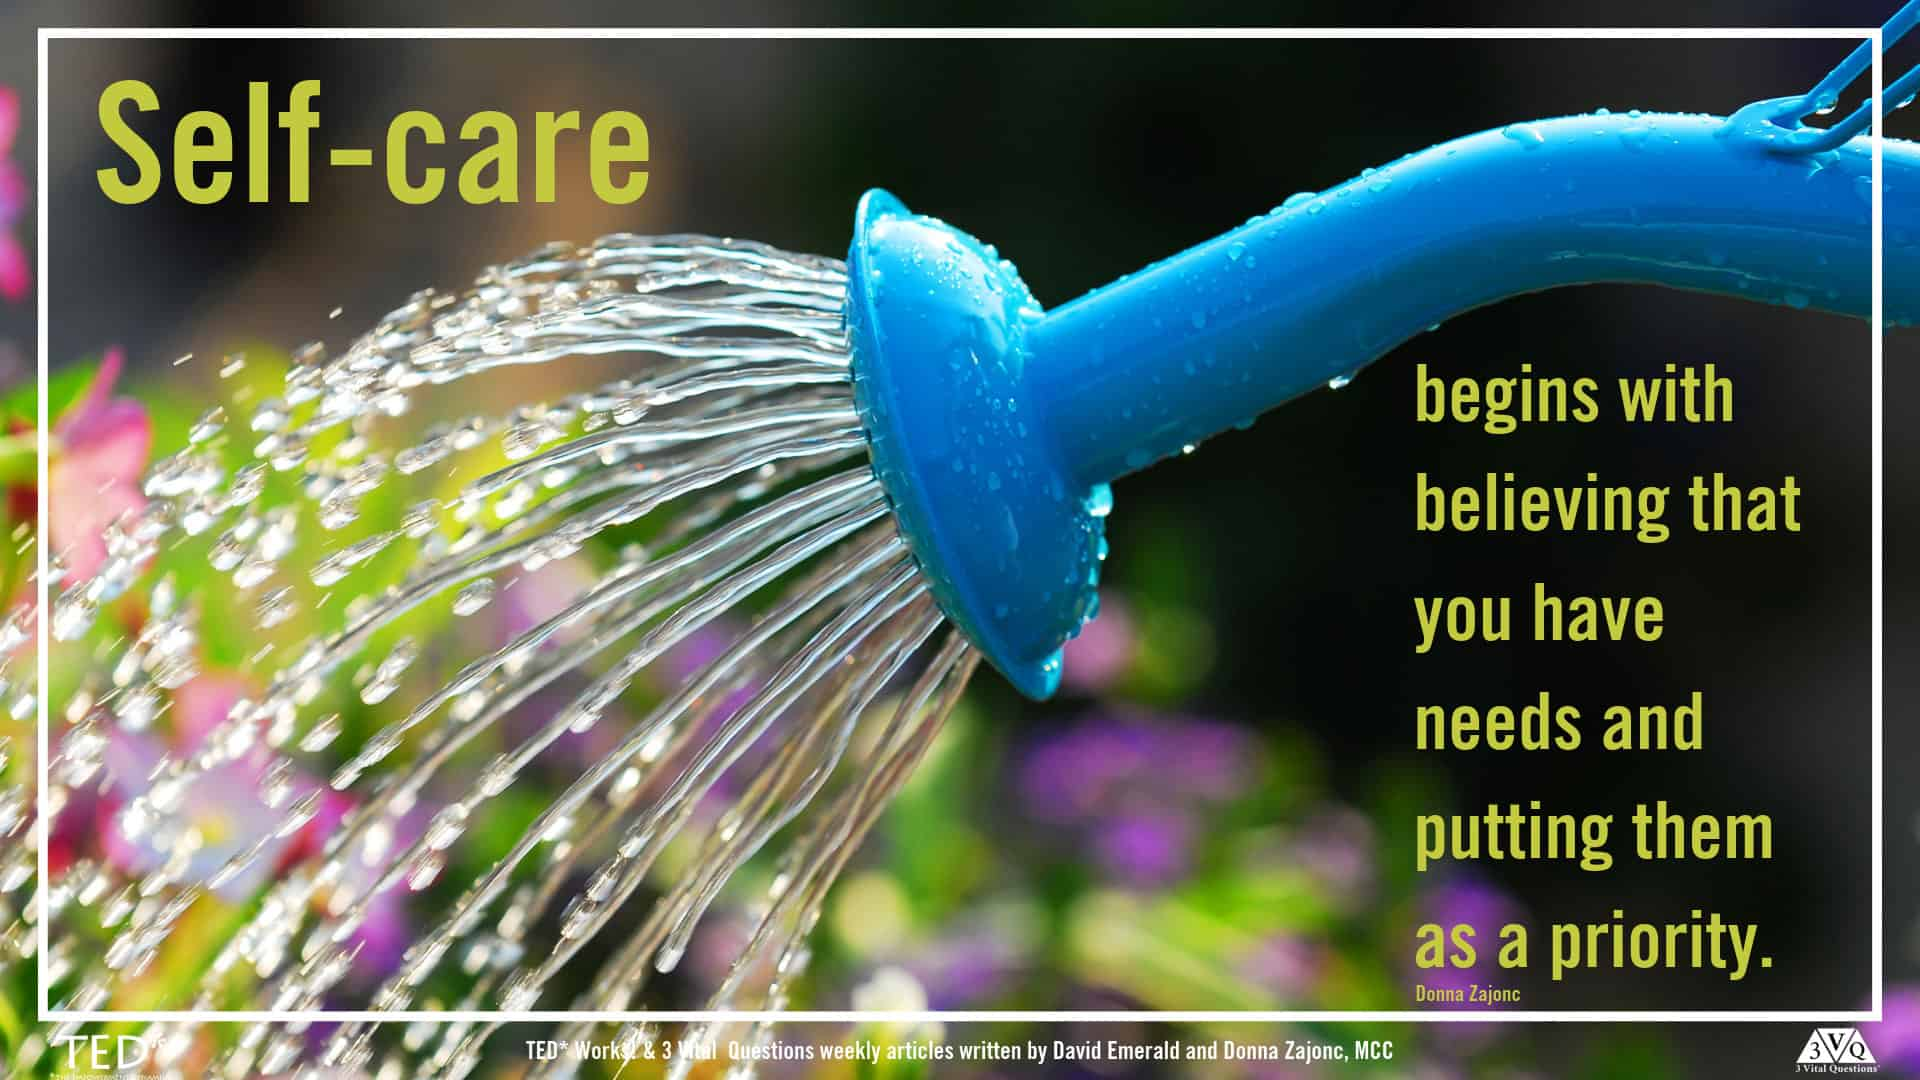 self care begins with believing you have needs and making them a priority.